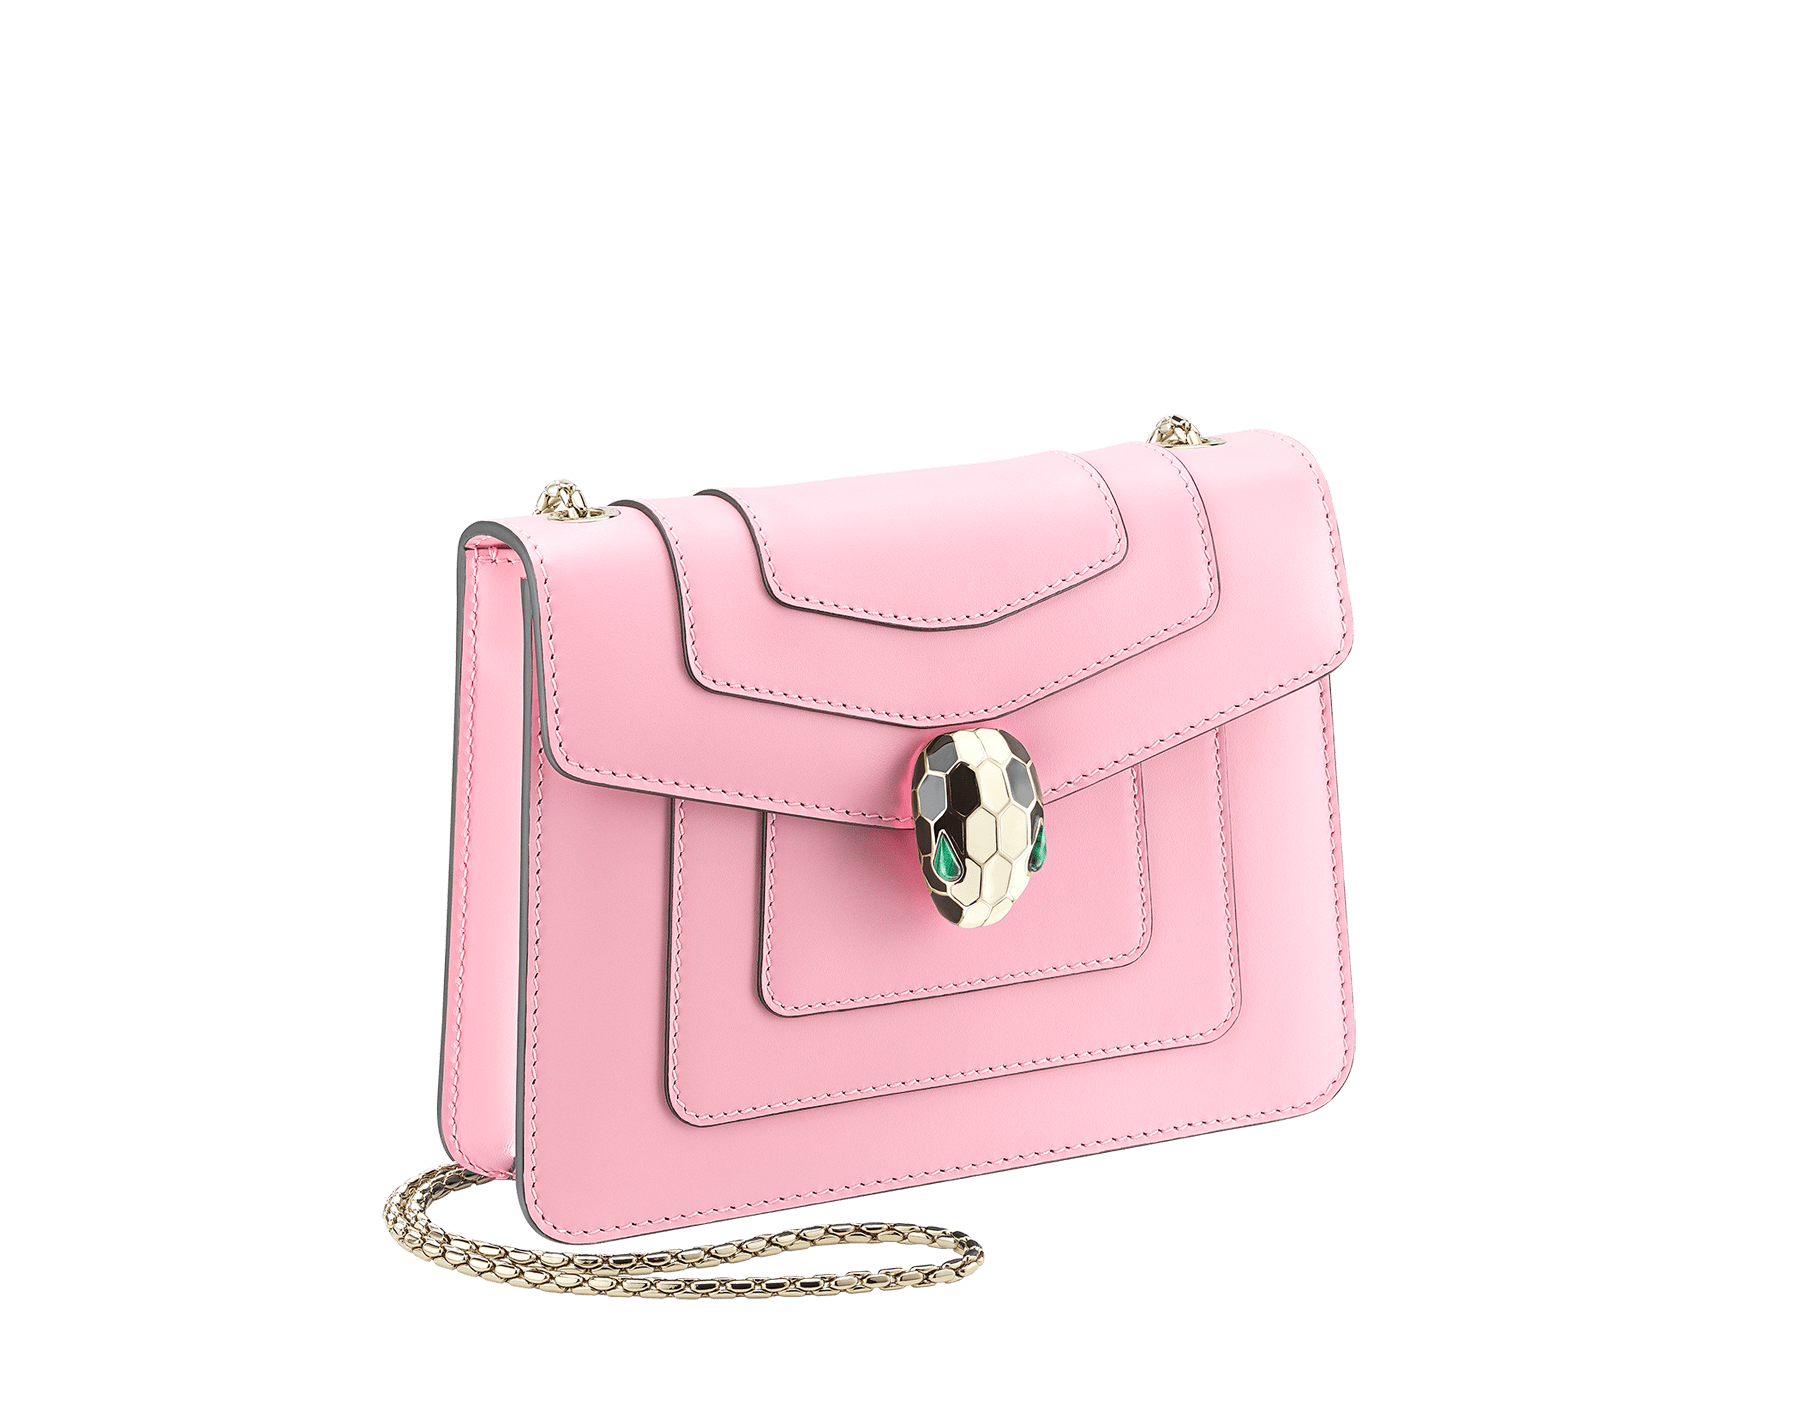 Serpenti Forever crossbody bag in sea star coral smooth calf leather. Snakehead closure in light gold plated brass decorated with black and white enamel, and green malachite eyes. 422-CLb image 2